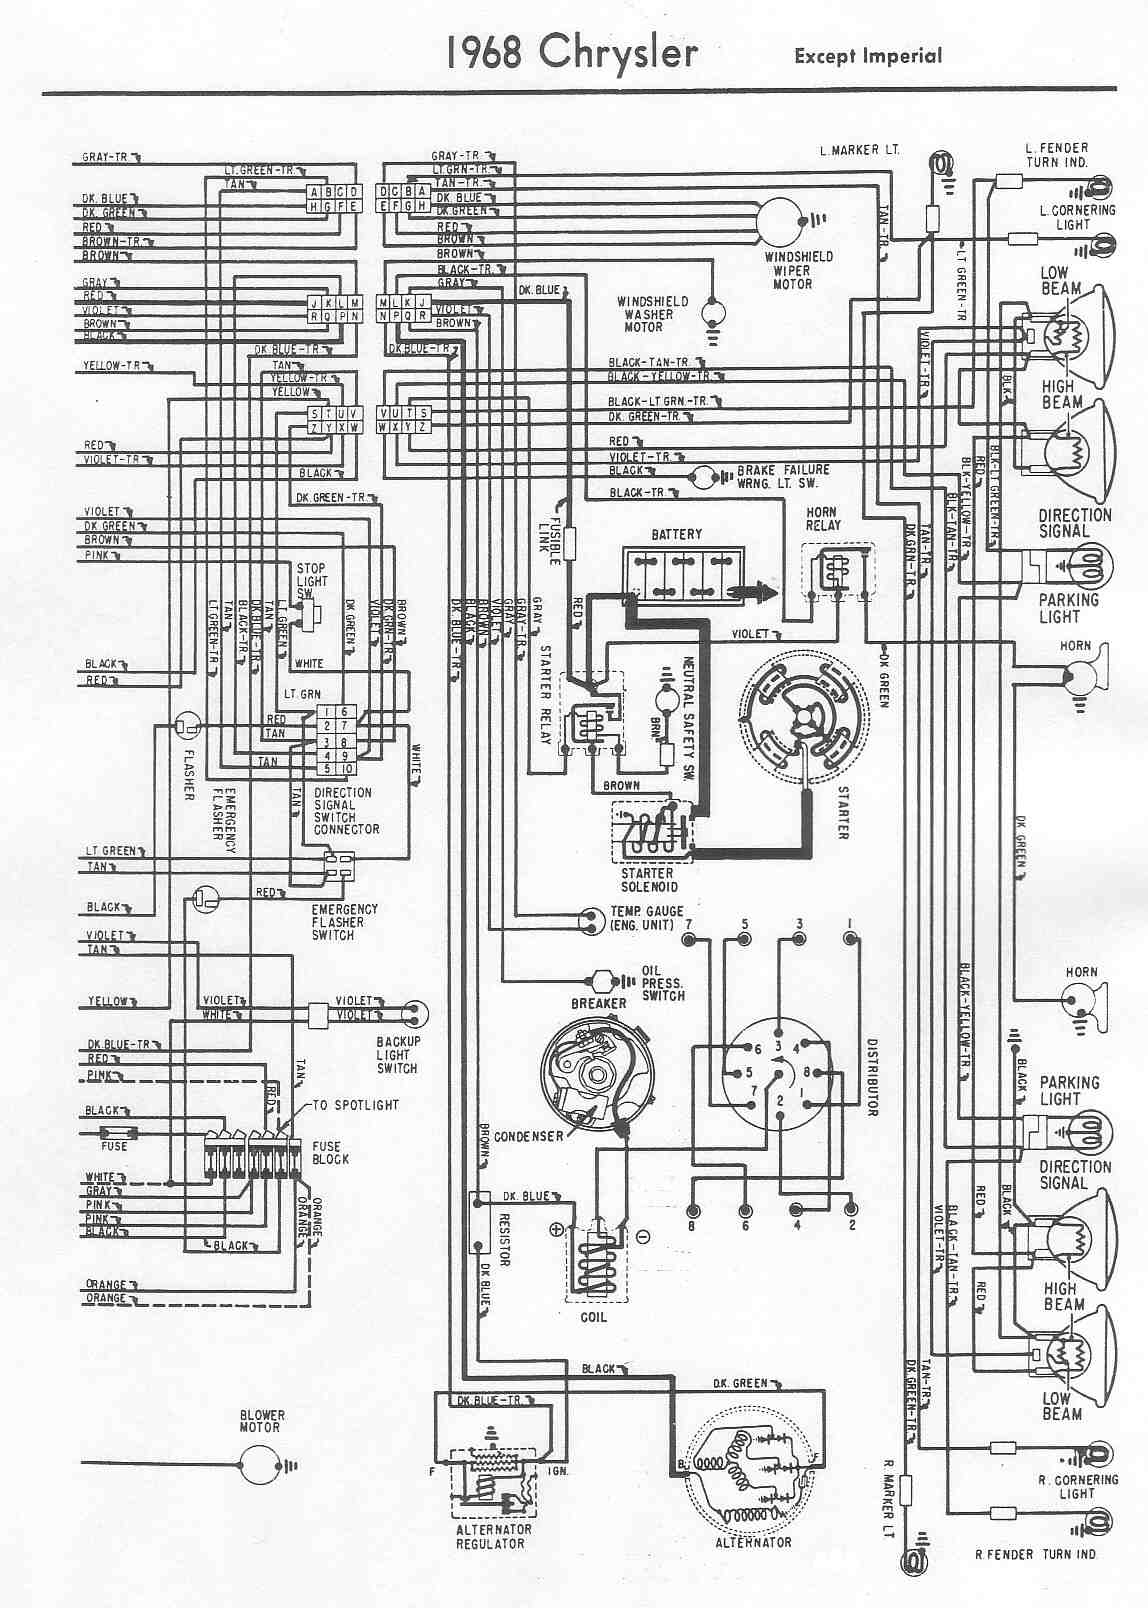 wiring diagram in addition 1972 chevy c10 wiring diagram on 68 68 chevelle wiring schematic 1966 gto wiring schematic [ 1148 x 1608 Pixel ]